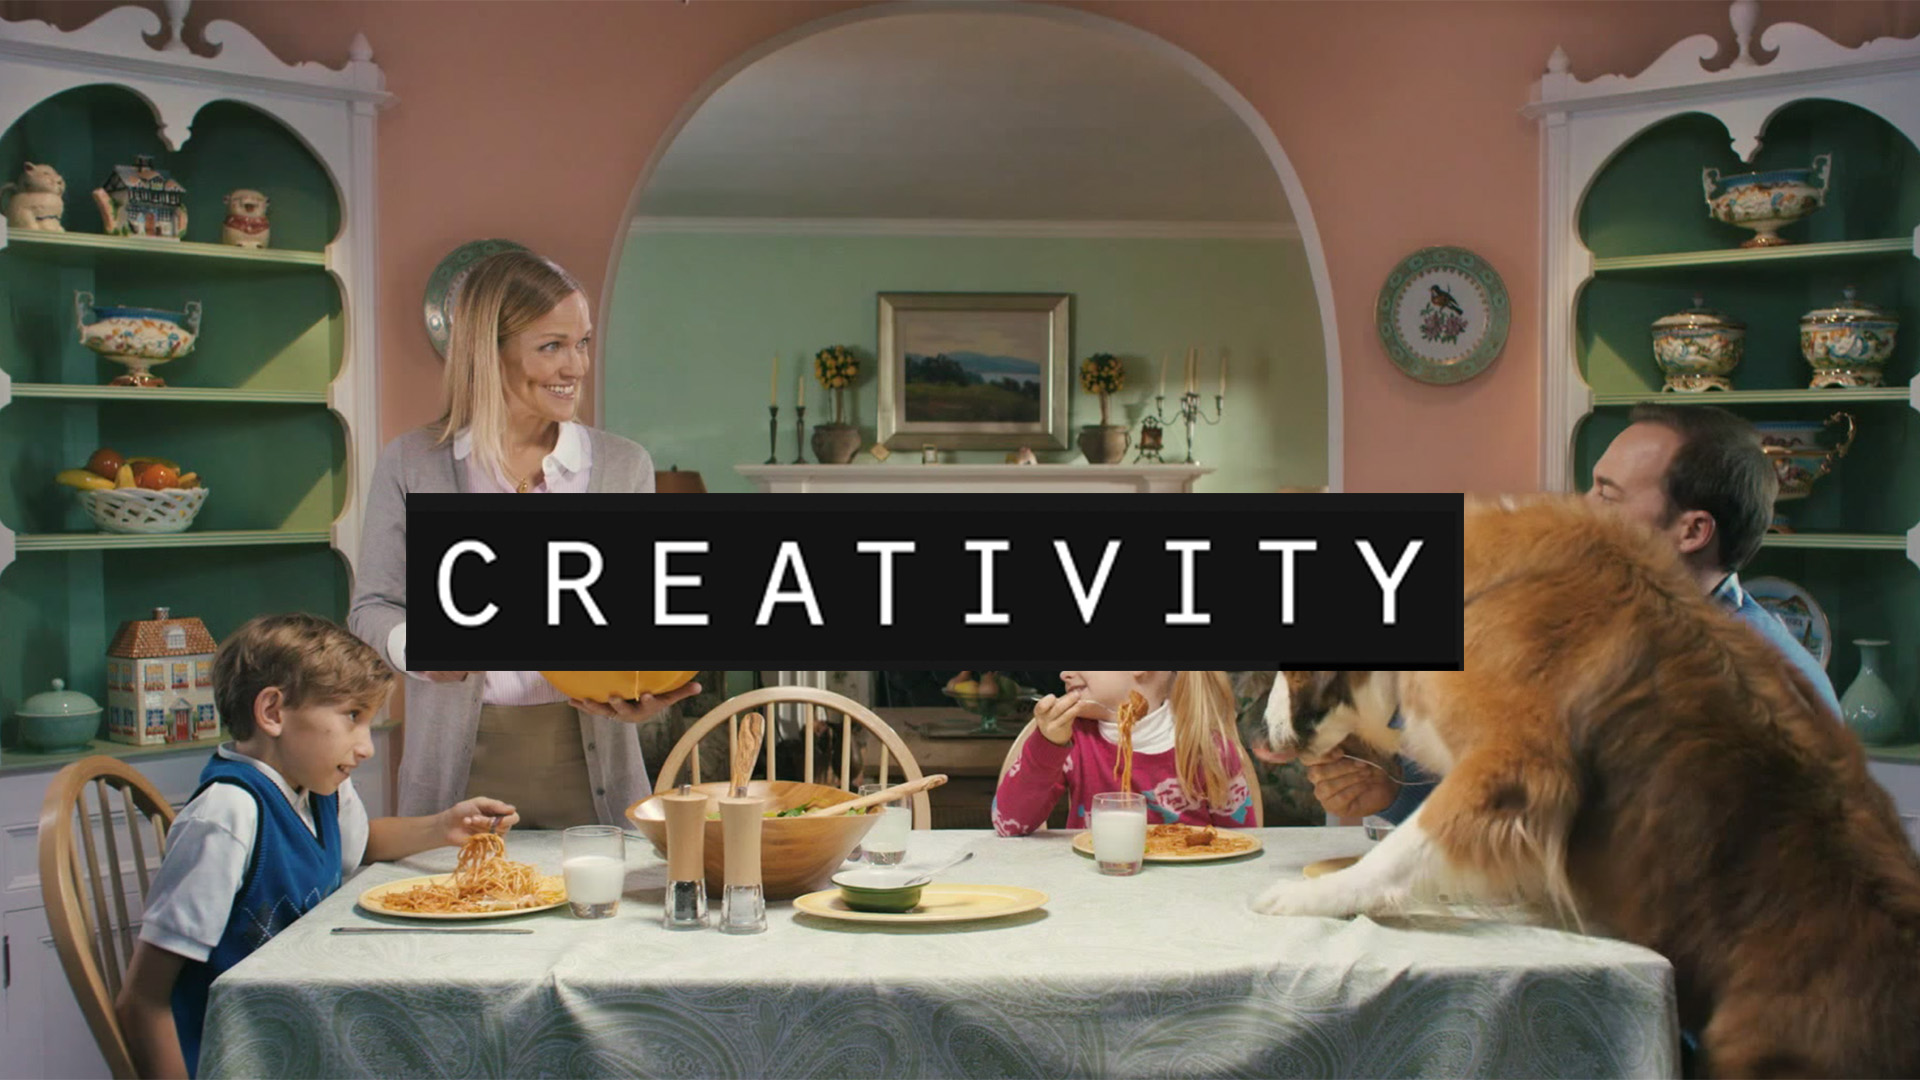 Best of 2015: Creativity Names GEICO's Unskippable #1 for TV/Film ...